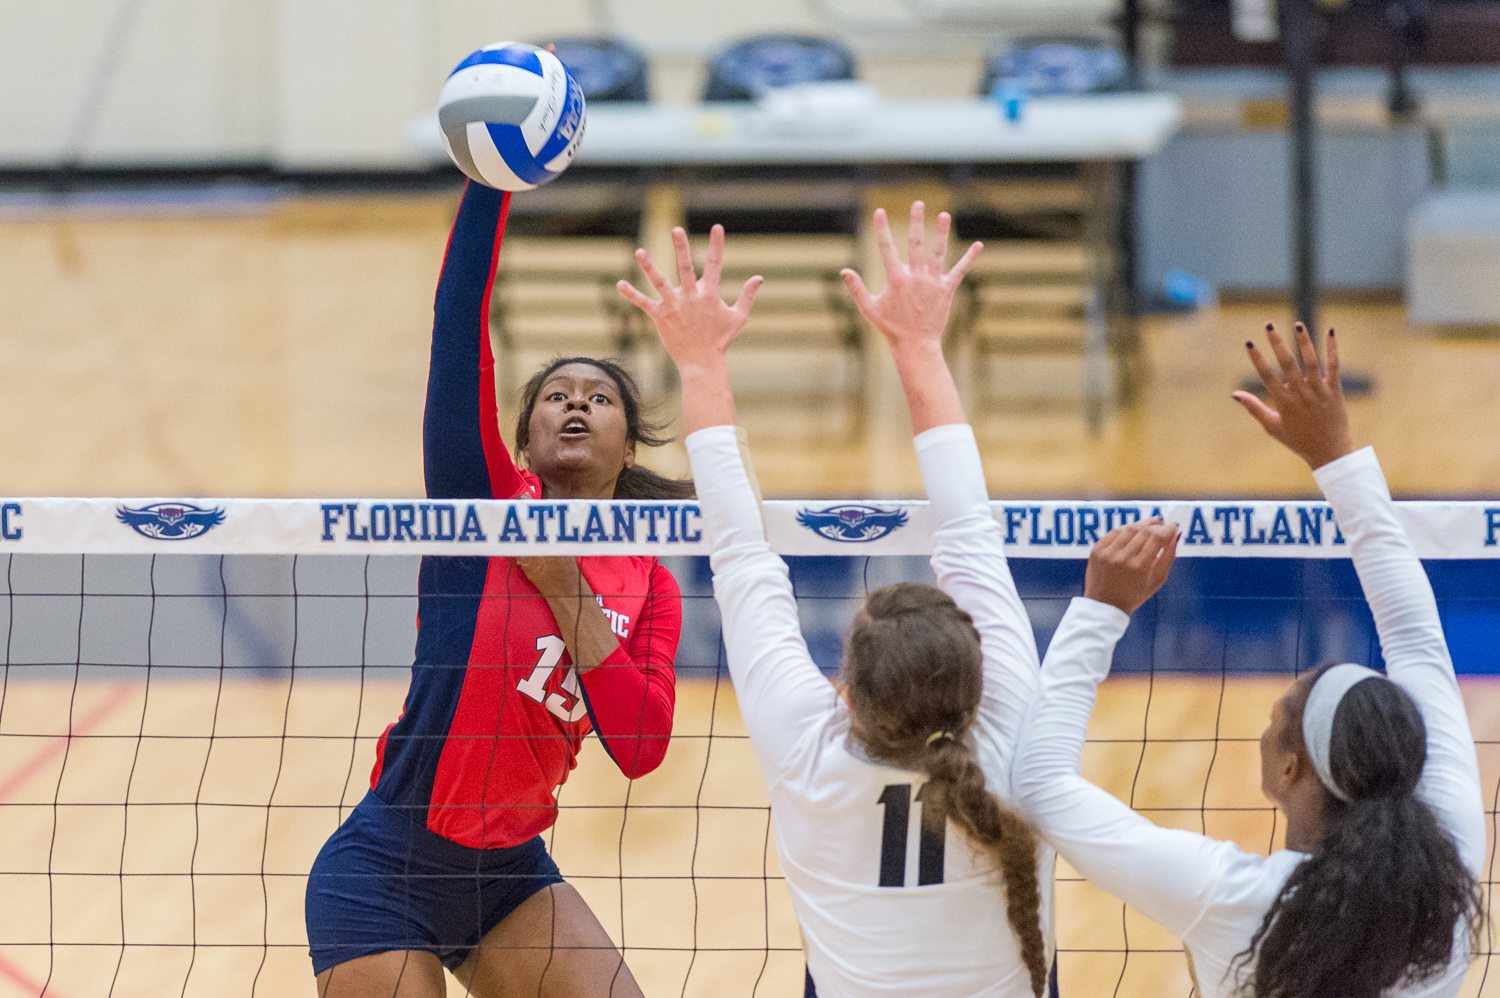 Redshirt sophomore Gabrielle Dixon will step into a bigger role near the net for her team this upcoming season with the graduation of Brittney Brown. Max Jackson | Staff Photographer